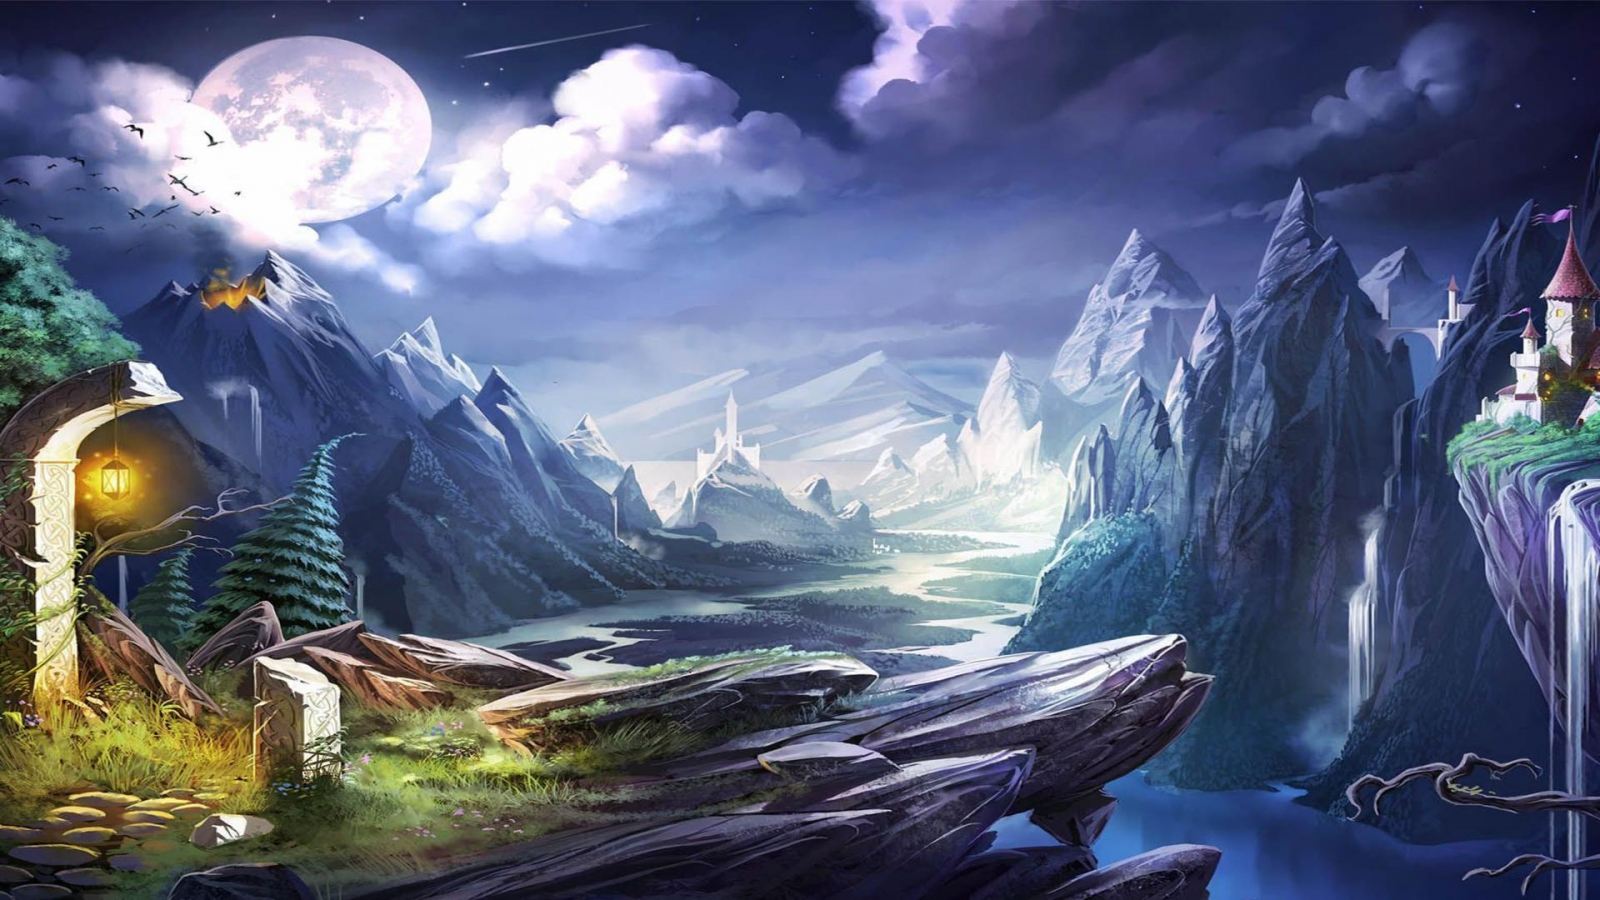 Trine 2 Backgrounds A4 - HD Desktop Wallpapers